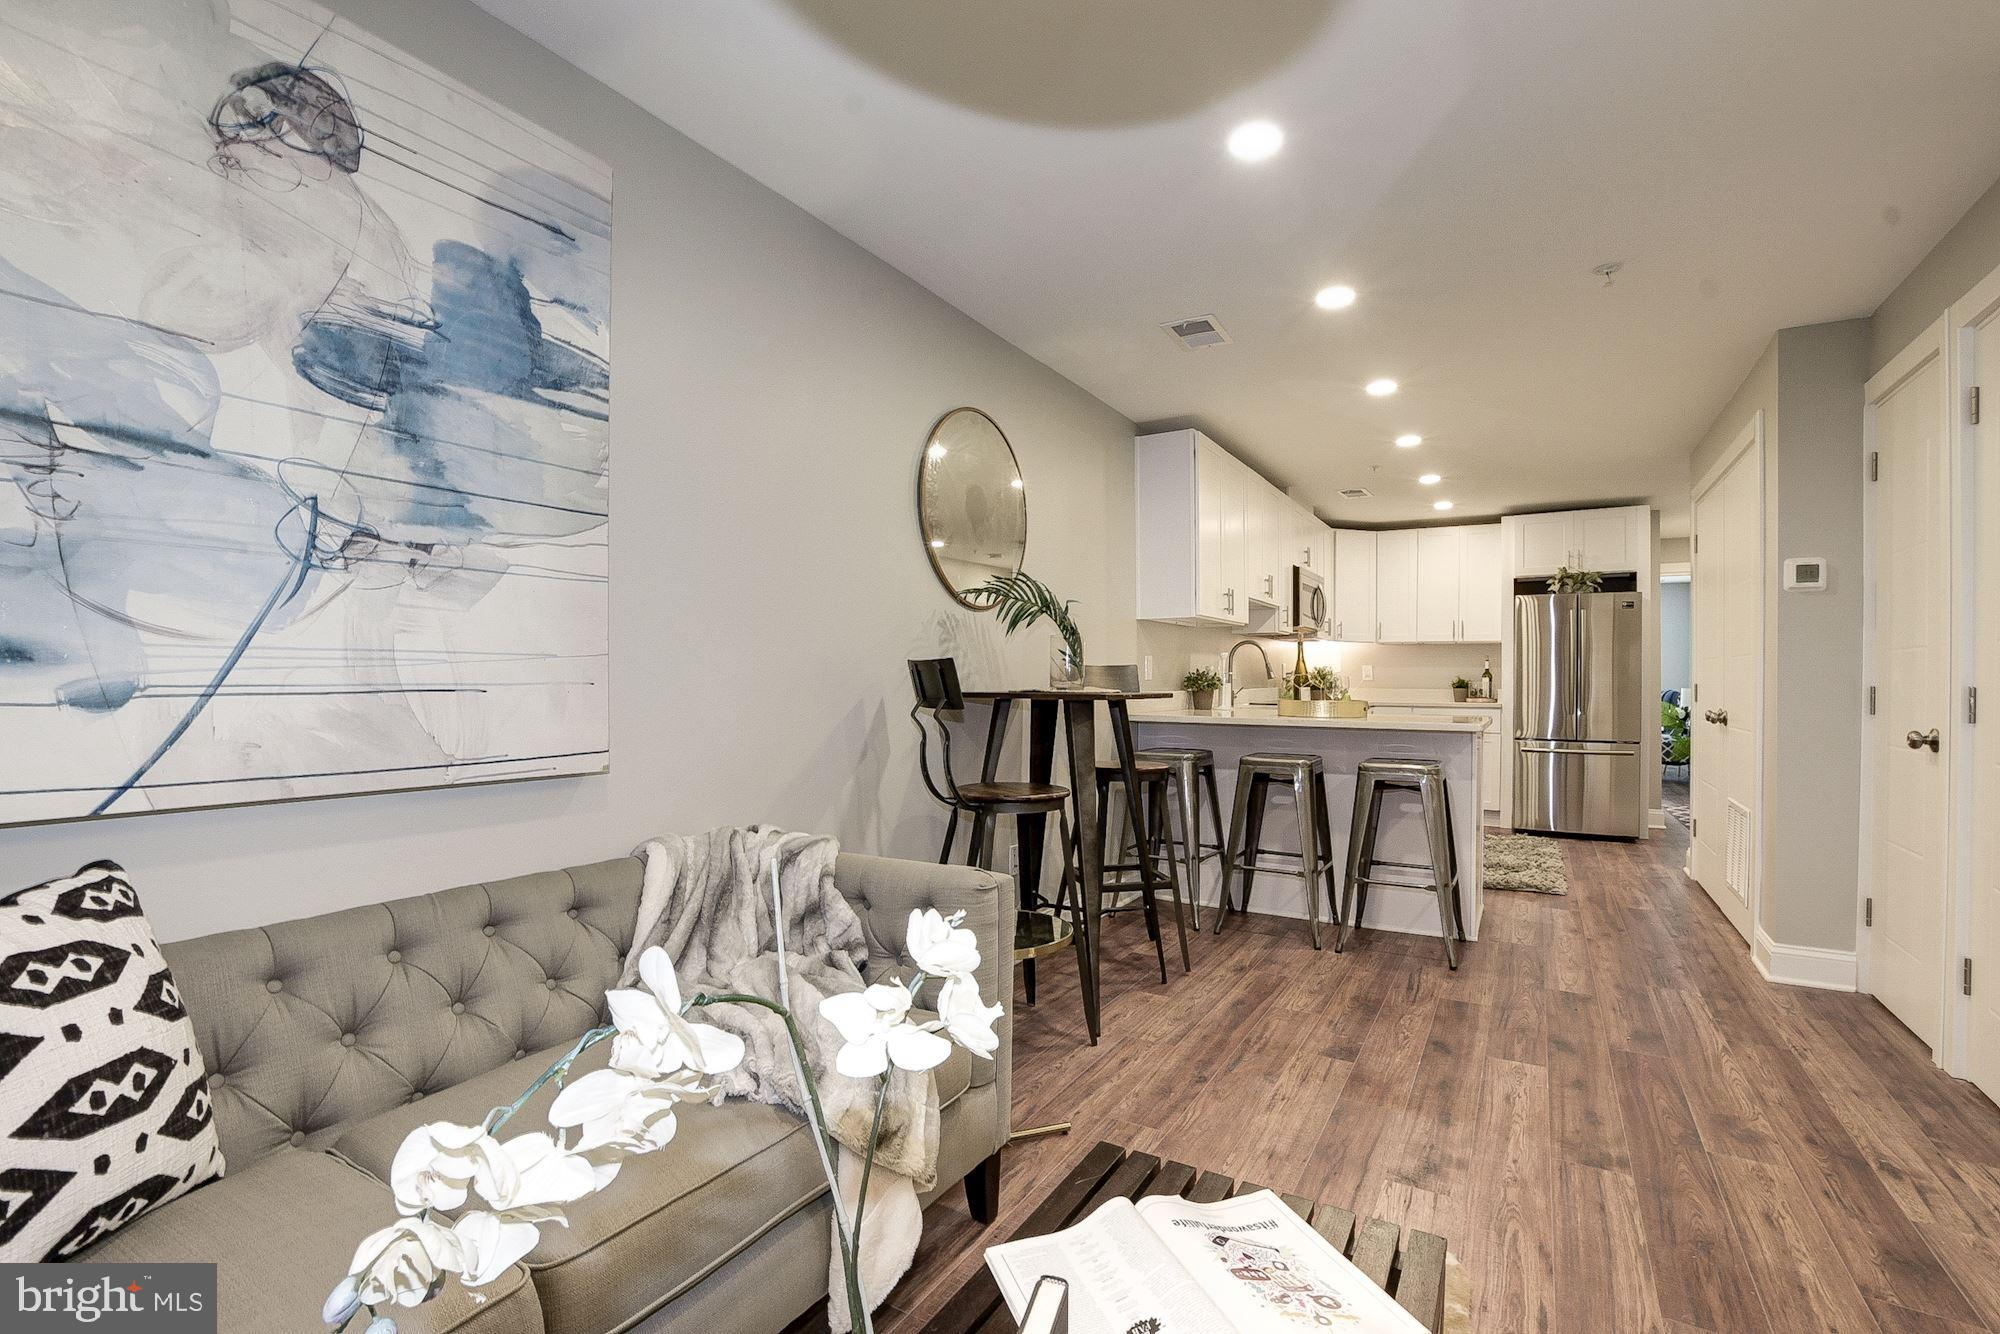 LAST UNIT LEFT IN THE PROJECT! Awesome new 16-unit ELEVATOR ACCESSIBLE condo offers modern & classic